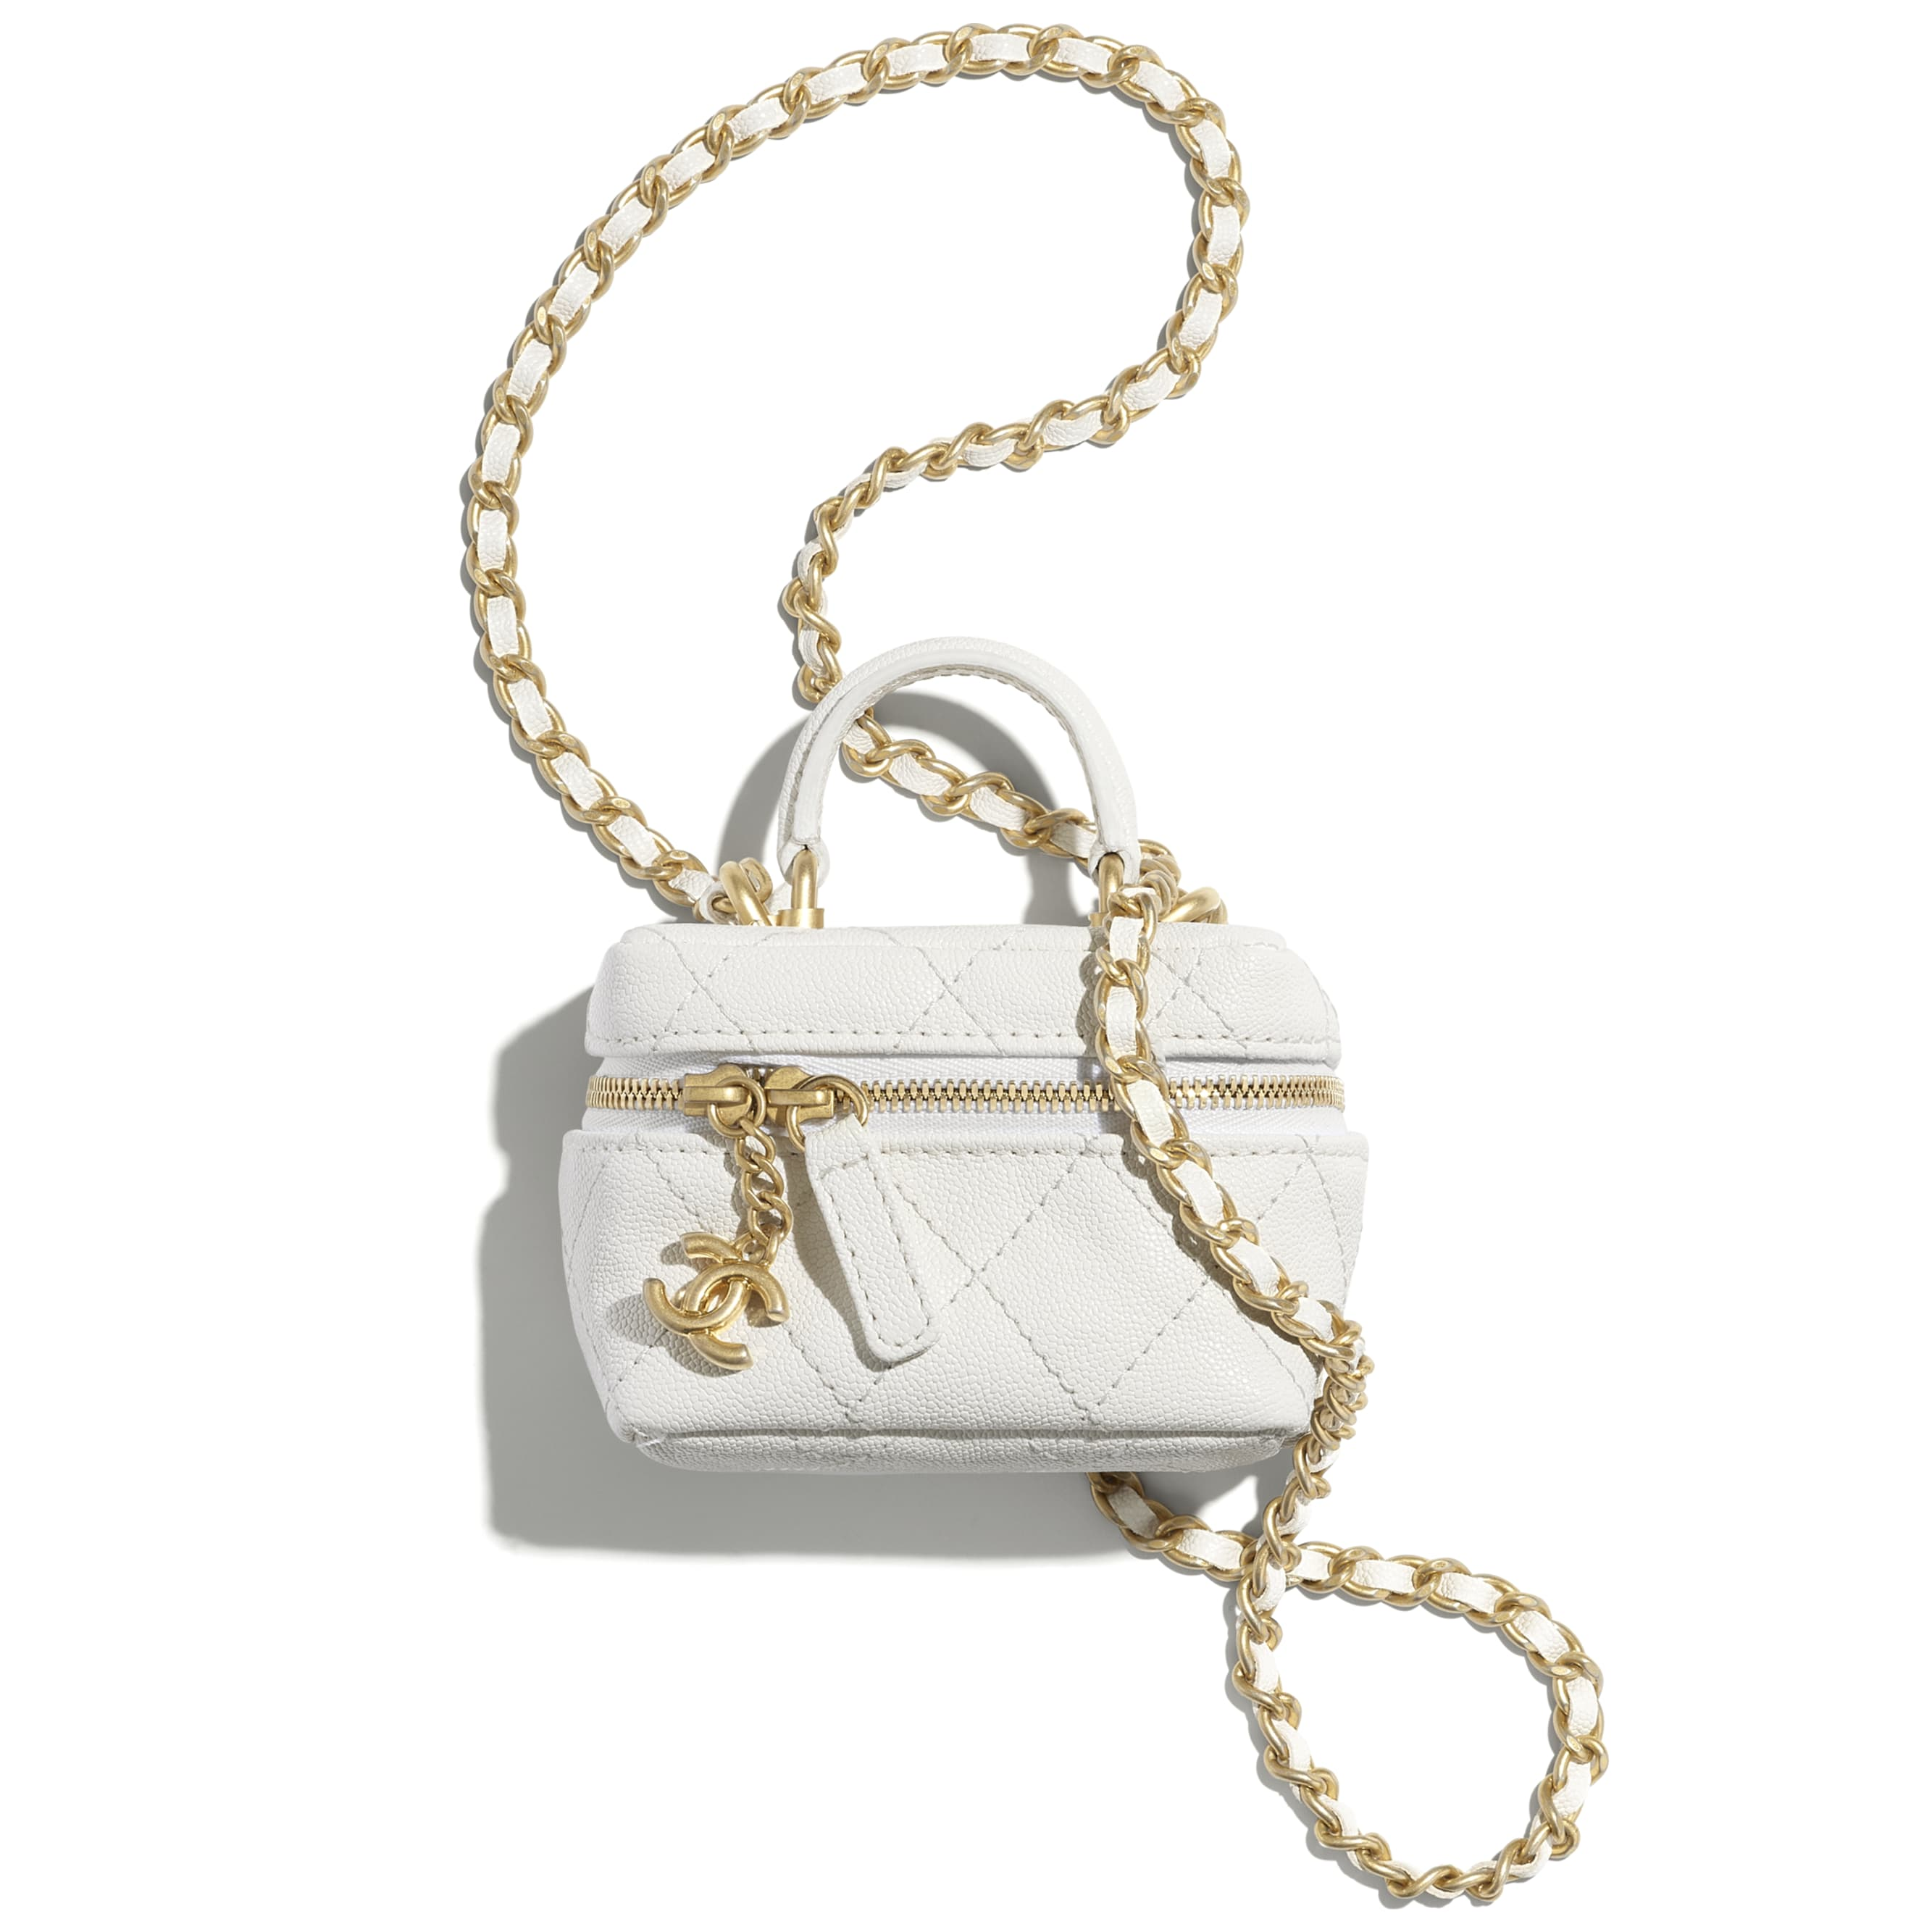 Small Vanity with Chain - White - Grained Calfskin & Gold-Tone Metal - CHANEL - Default view - see standard sized version